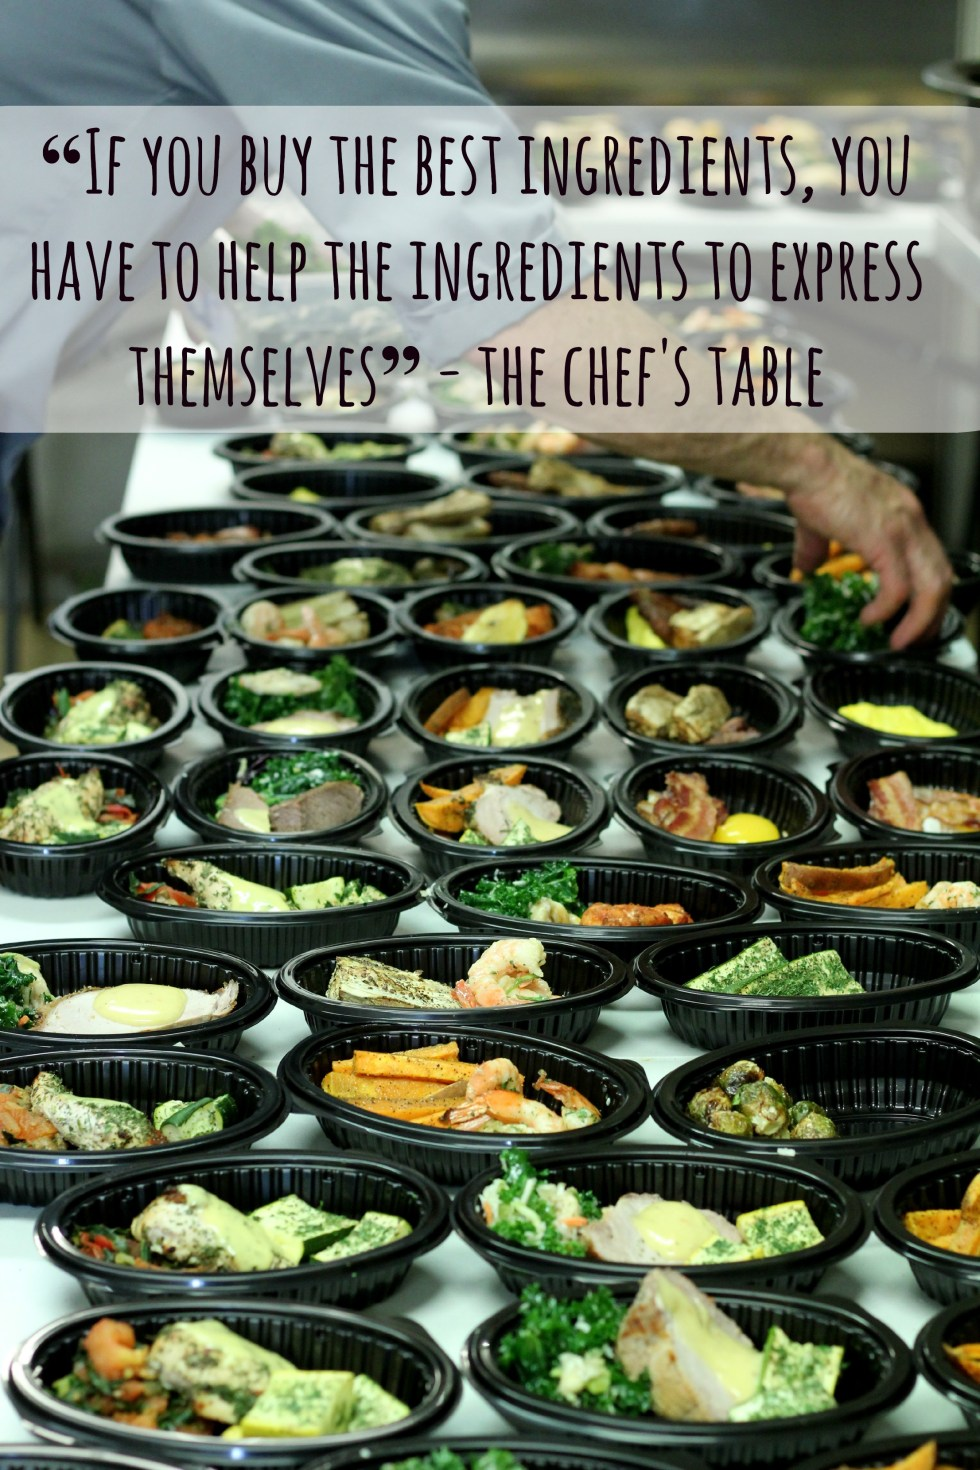 Chef's Table quote